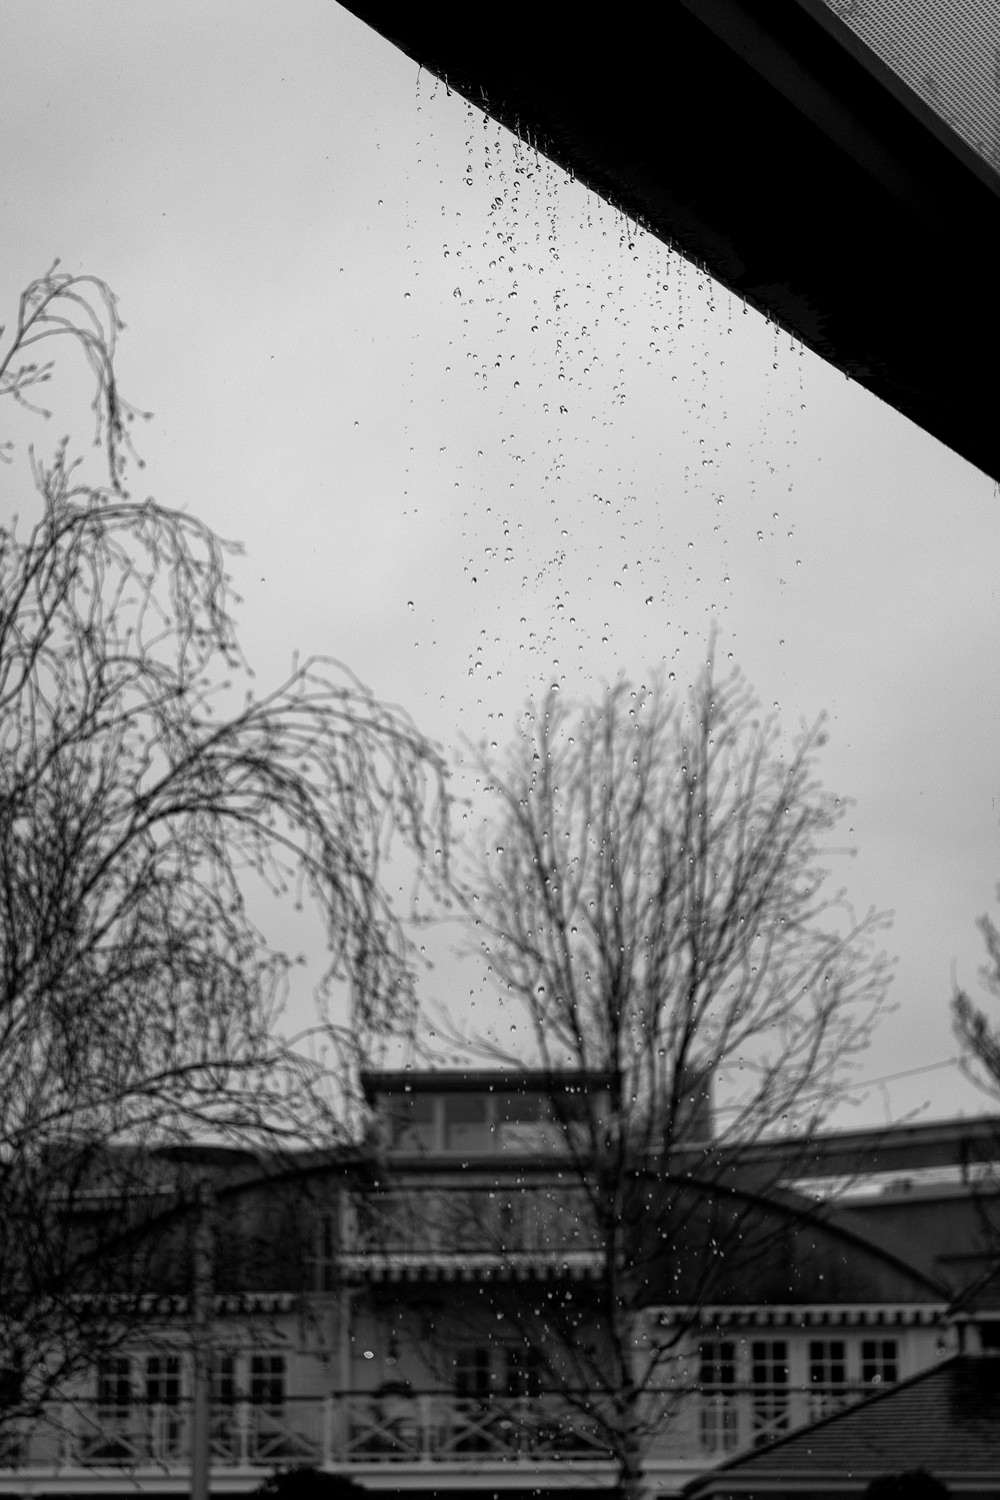 Water droplets falling off the edge of a roof shelter with another building and some trees in the background